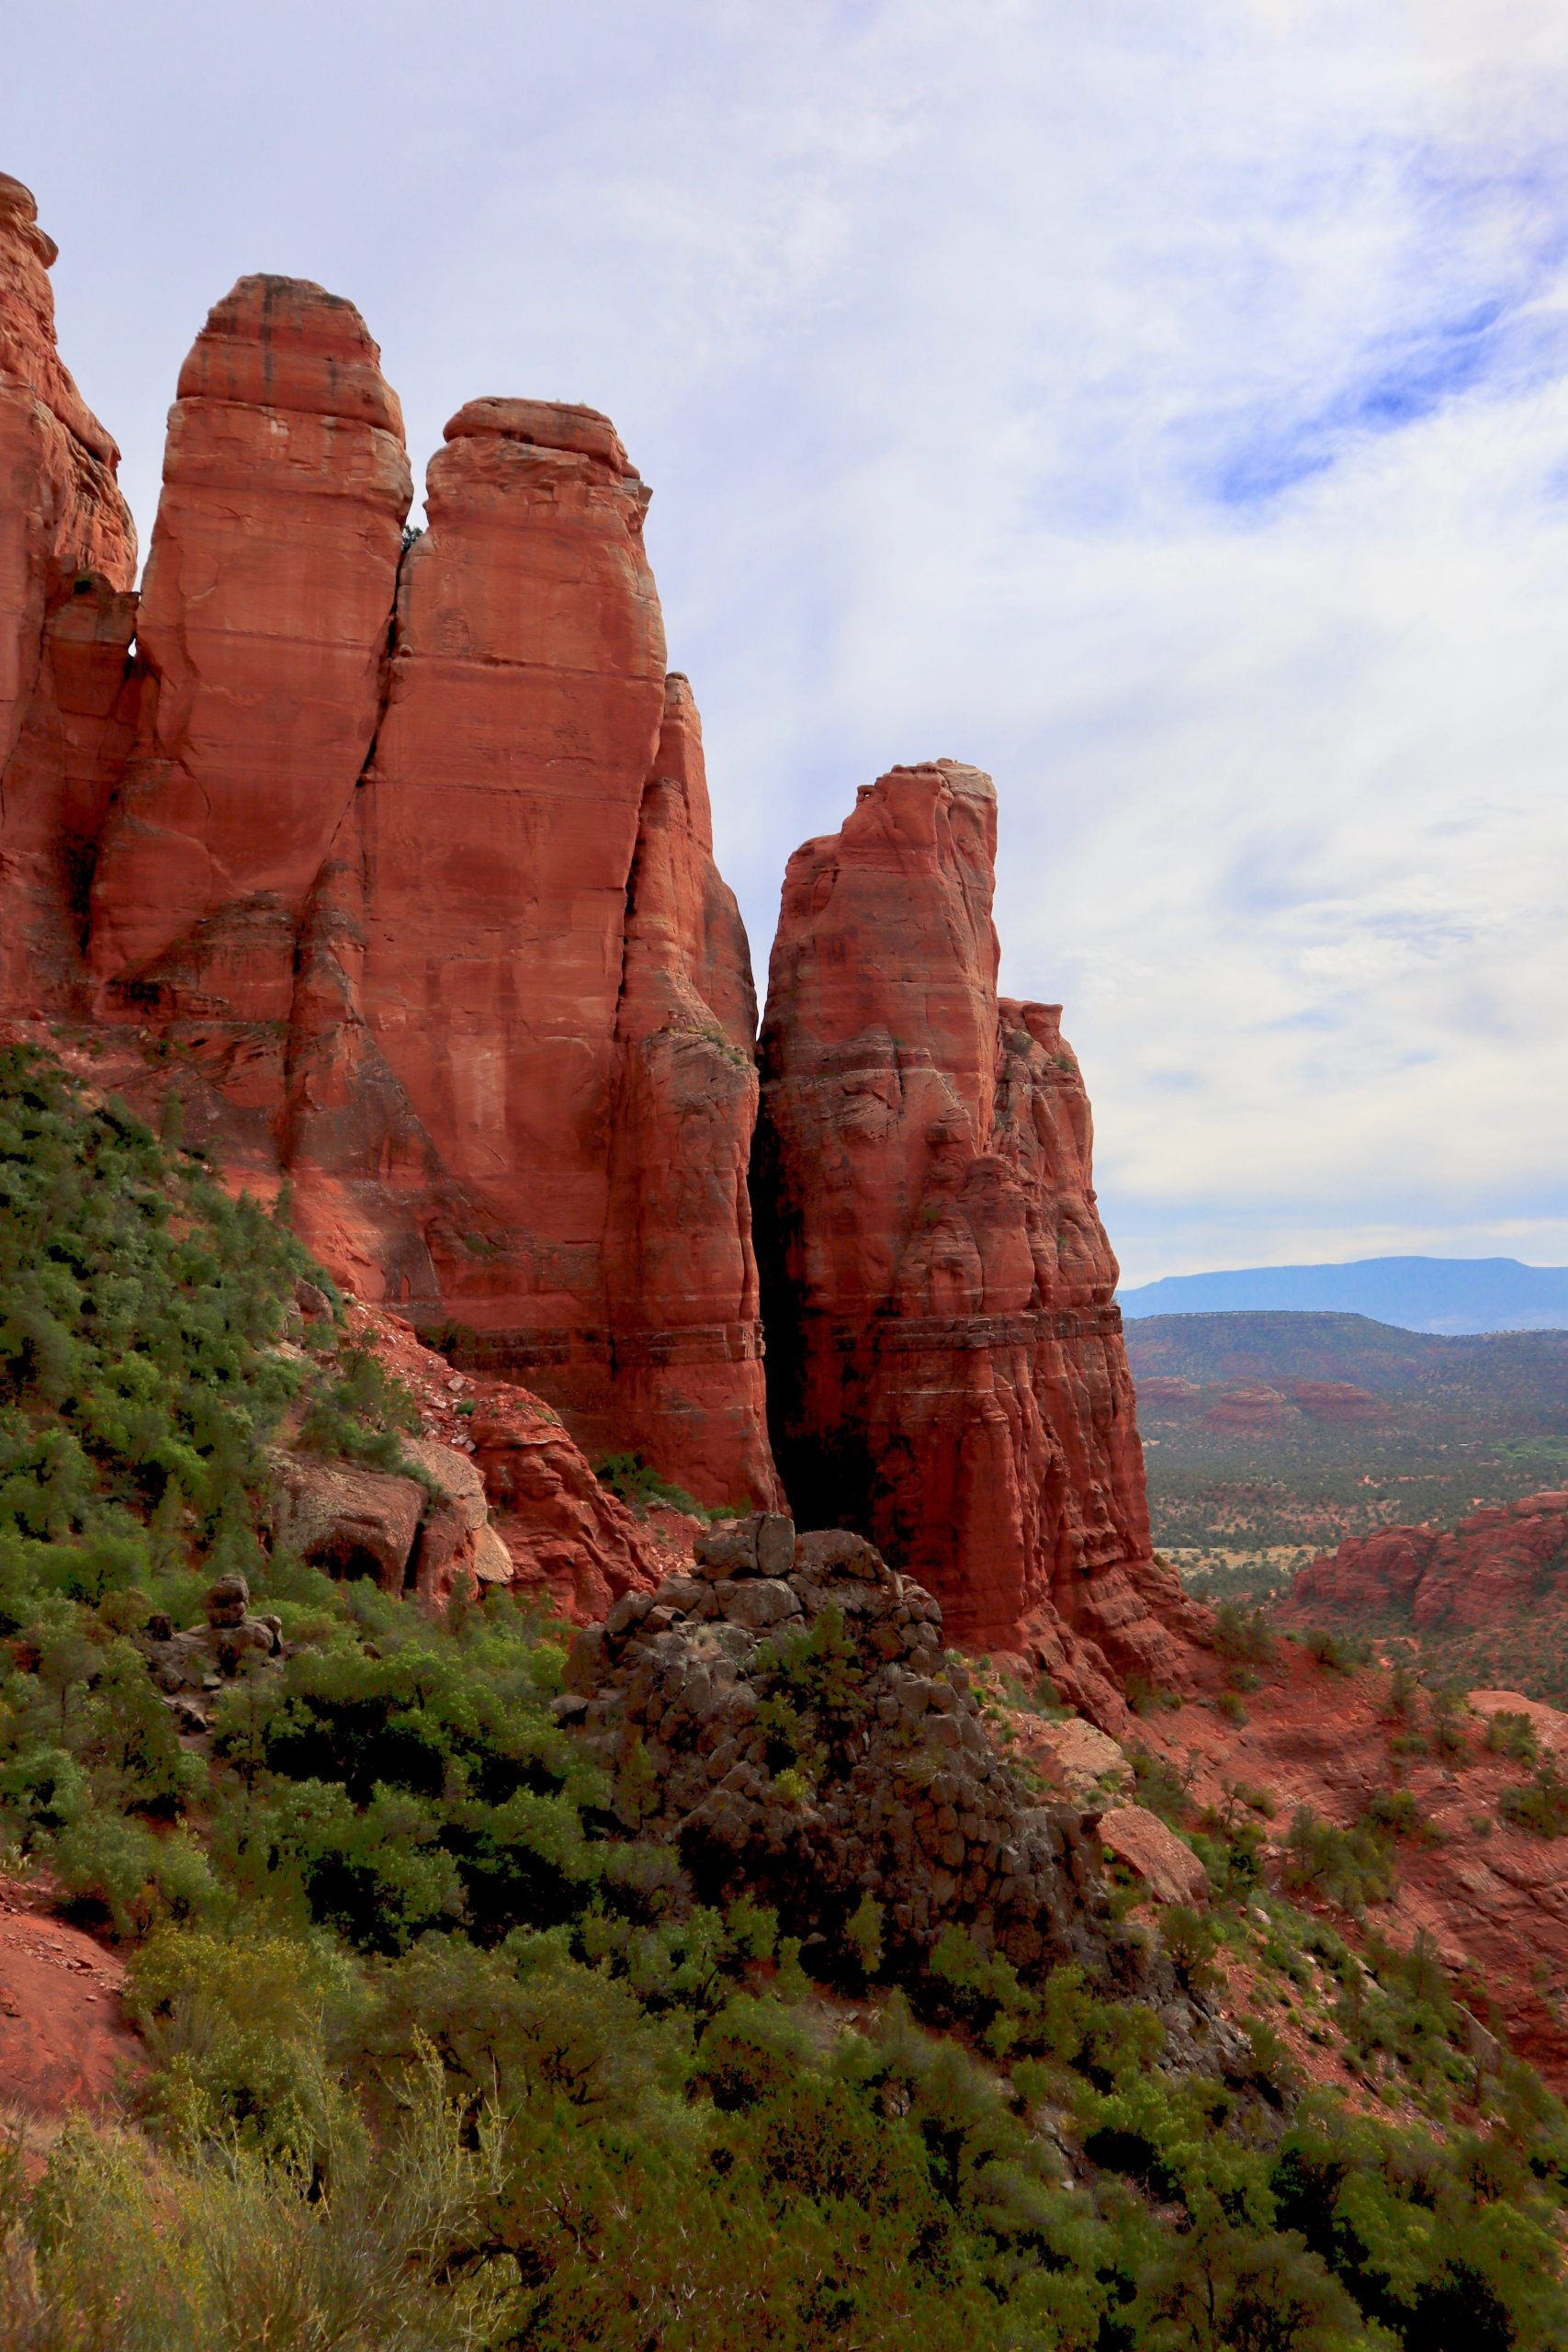 View at the End of Cathedral Rock Trail Sedona